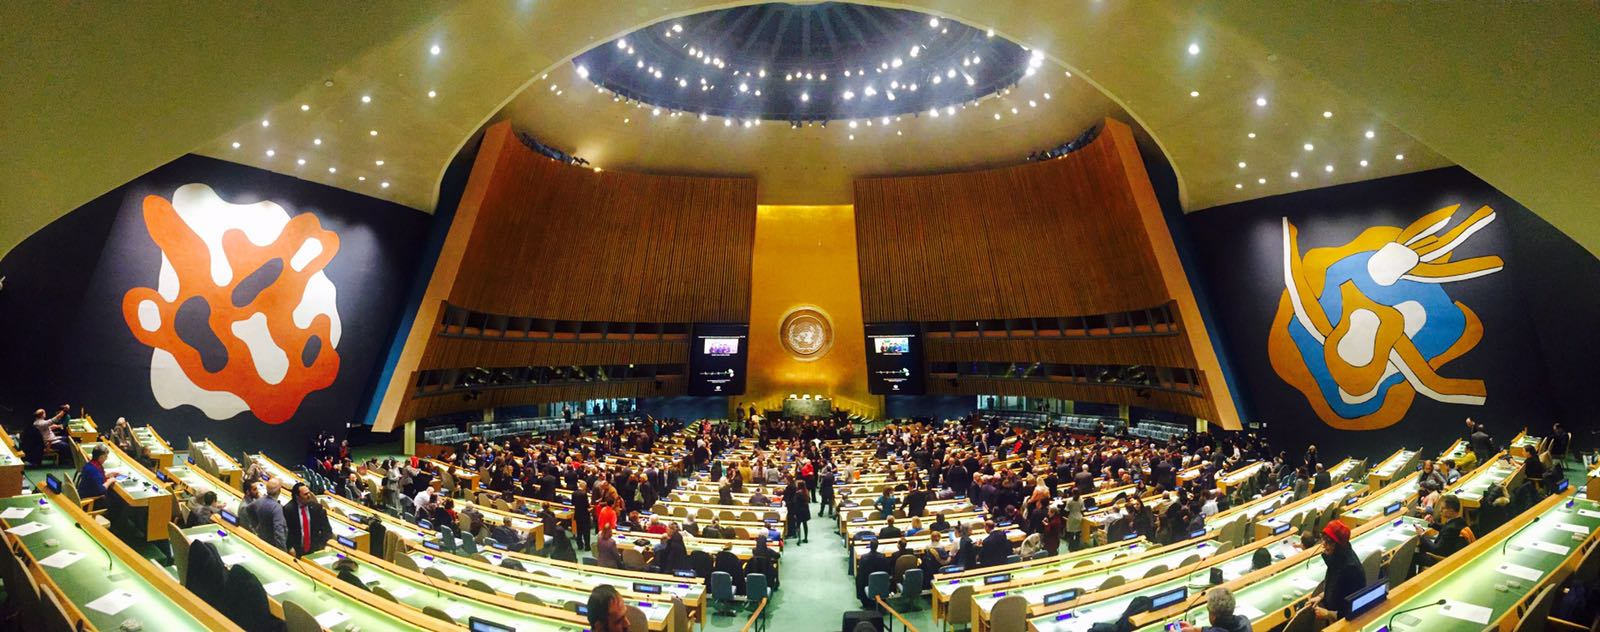 Starting now: Closing of the 71st session of the UN General Assembly. Watch live: https://t.co/WhwXXmCYWf https://t.co/u31gypuJ1h